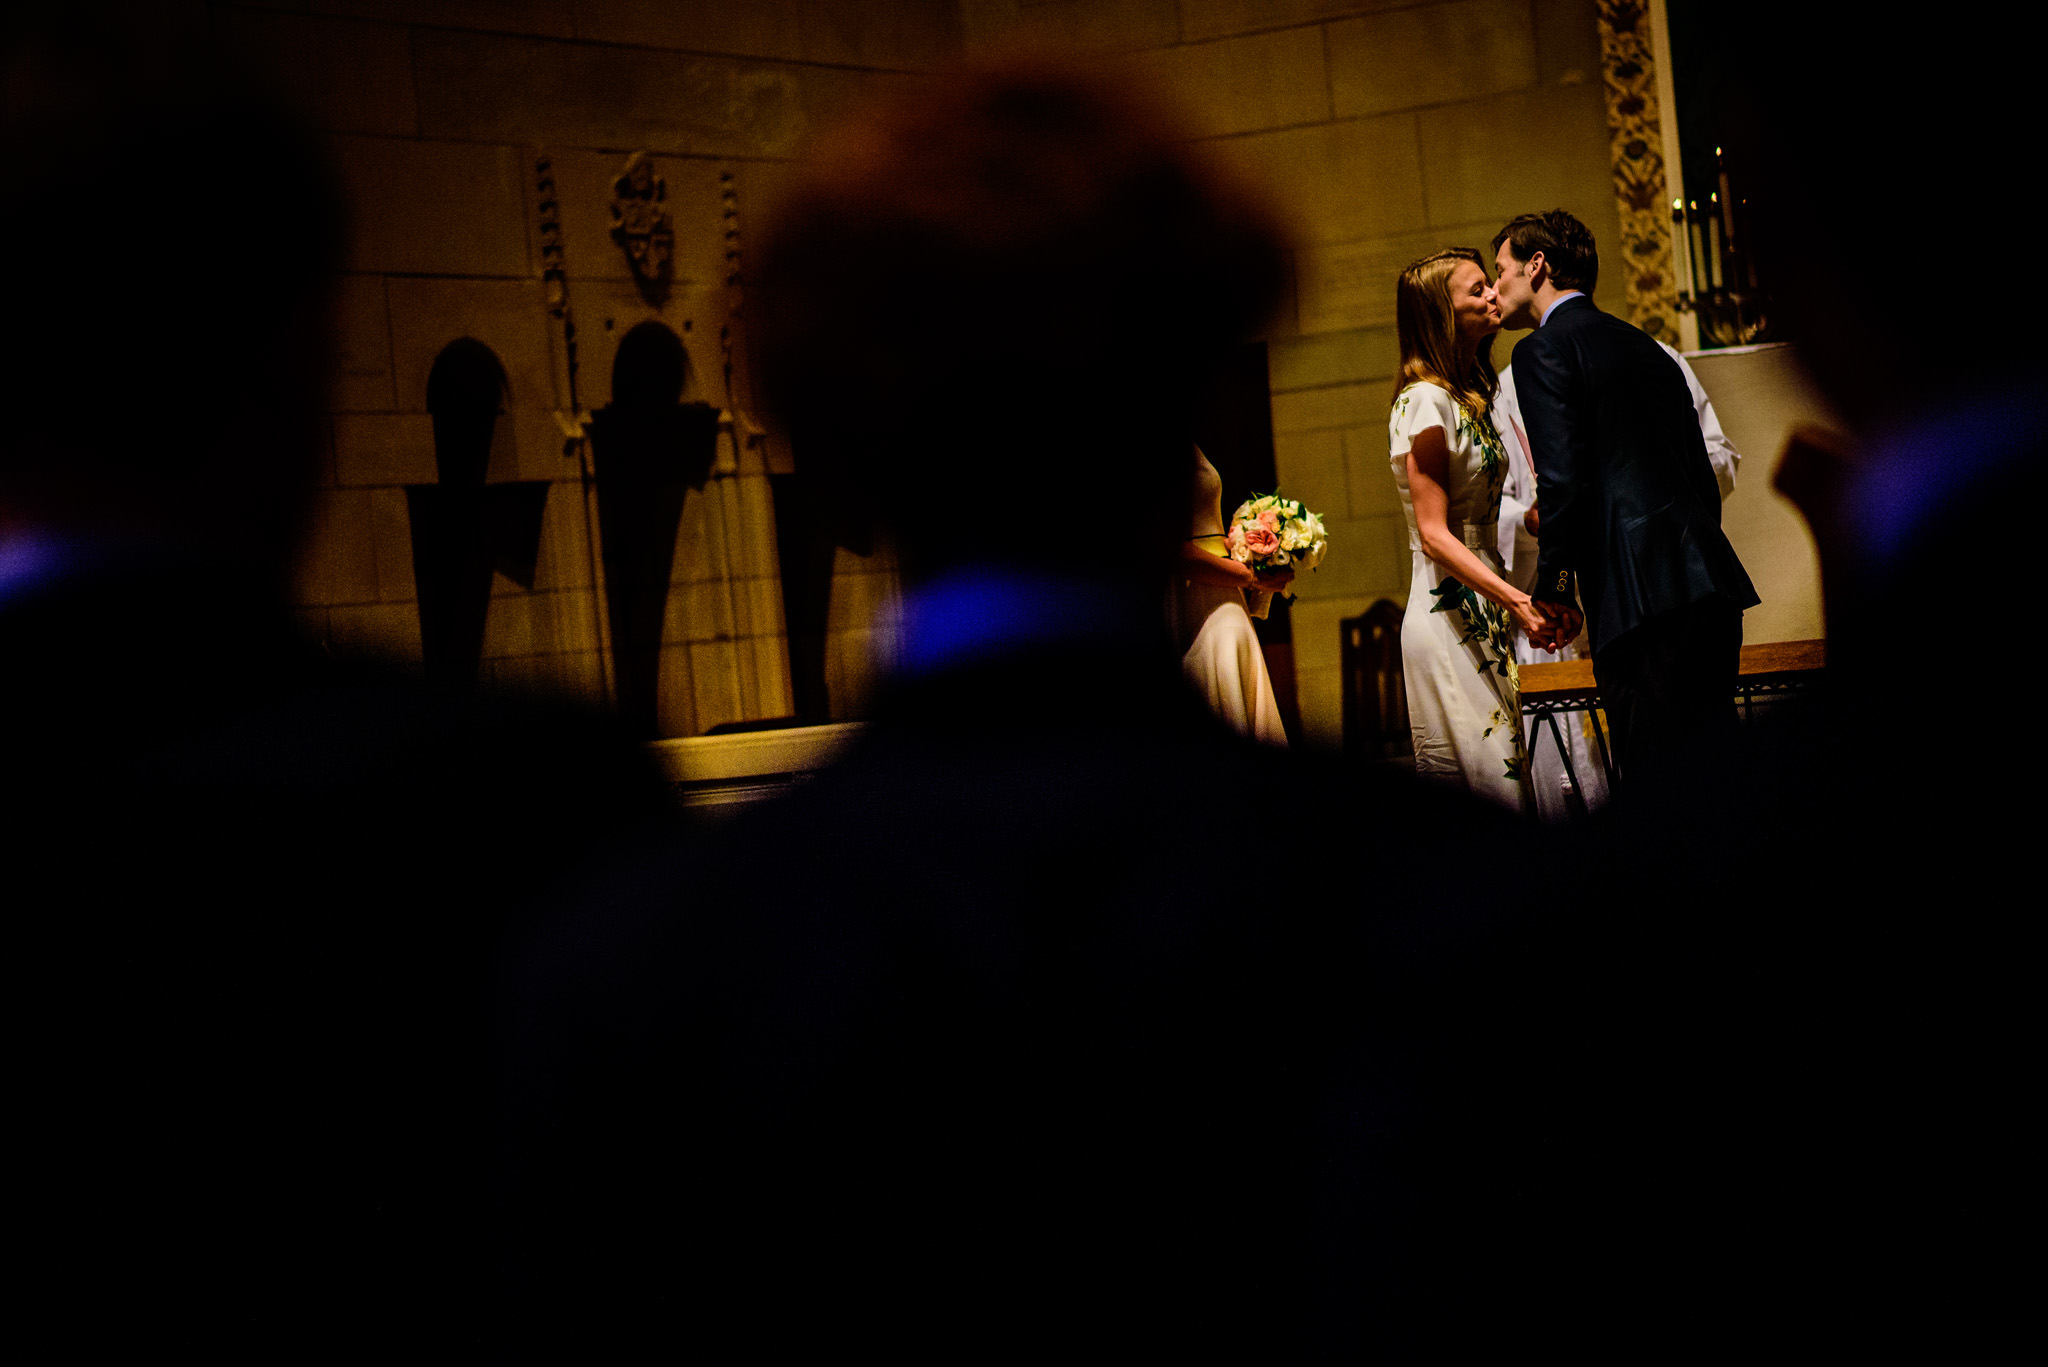 Bride and bridegroom share their first kiss